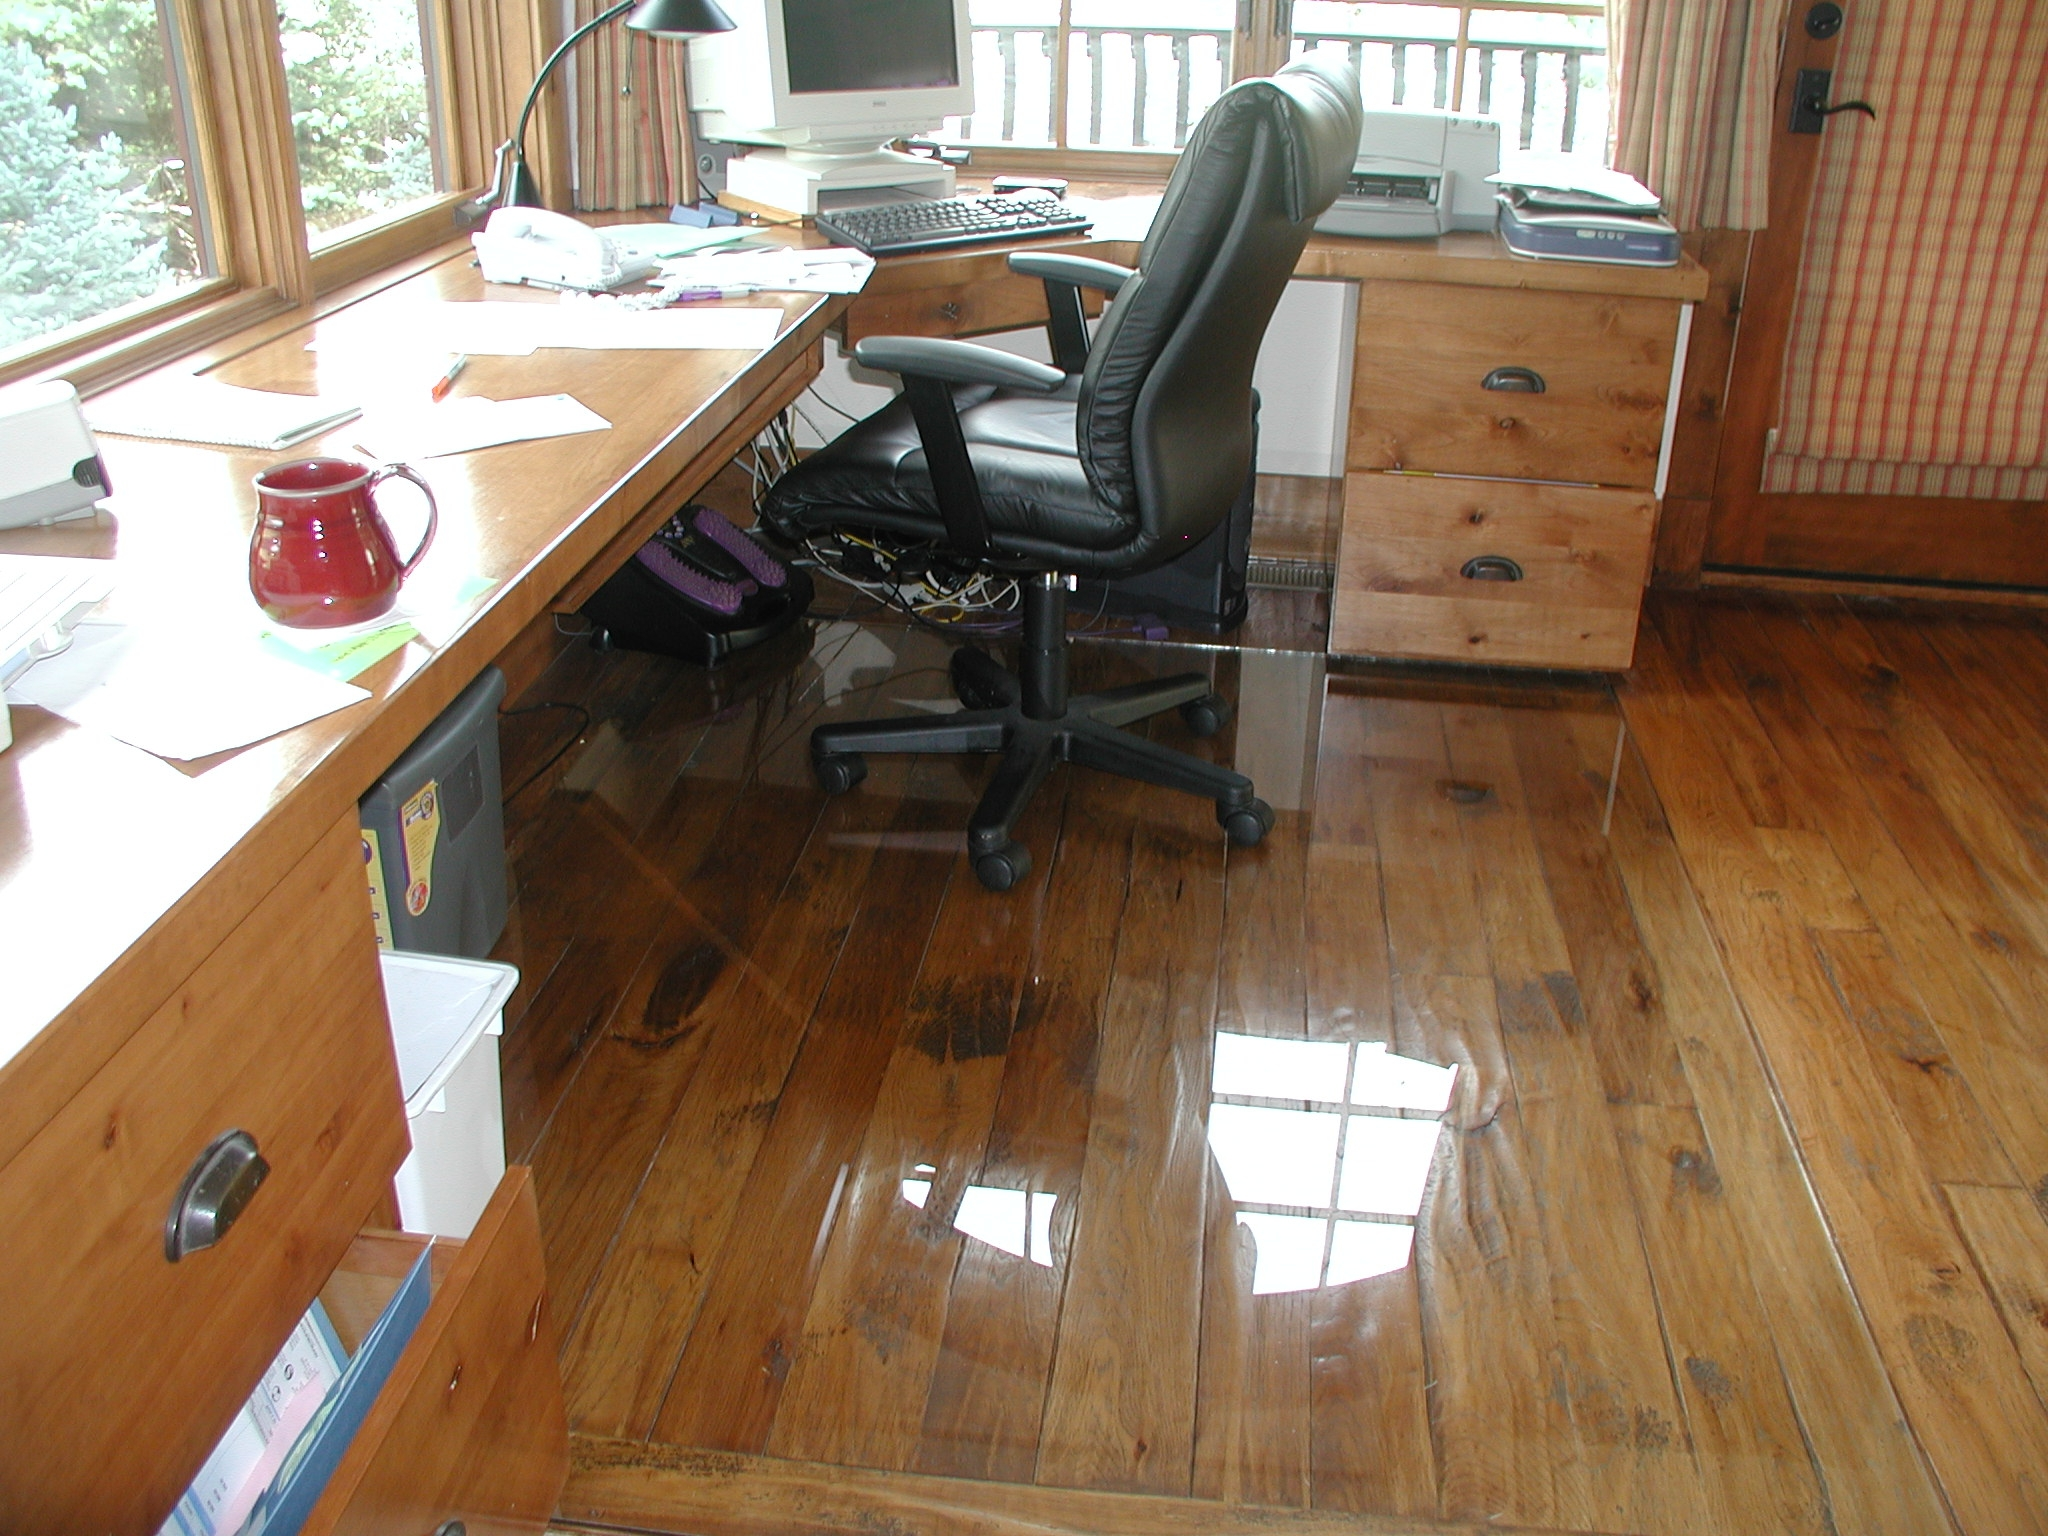 Best Pads For Chairs On Wood Floors